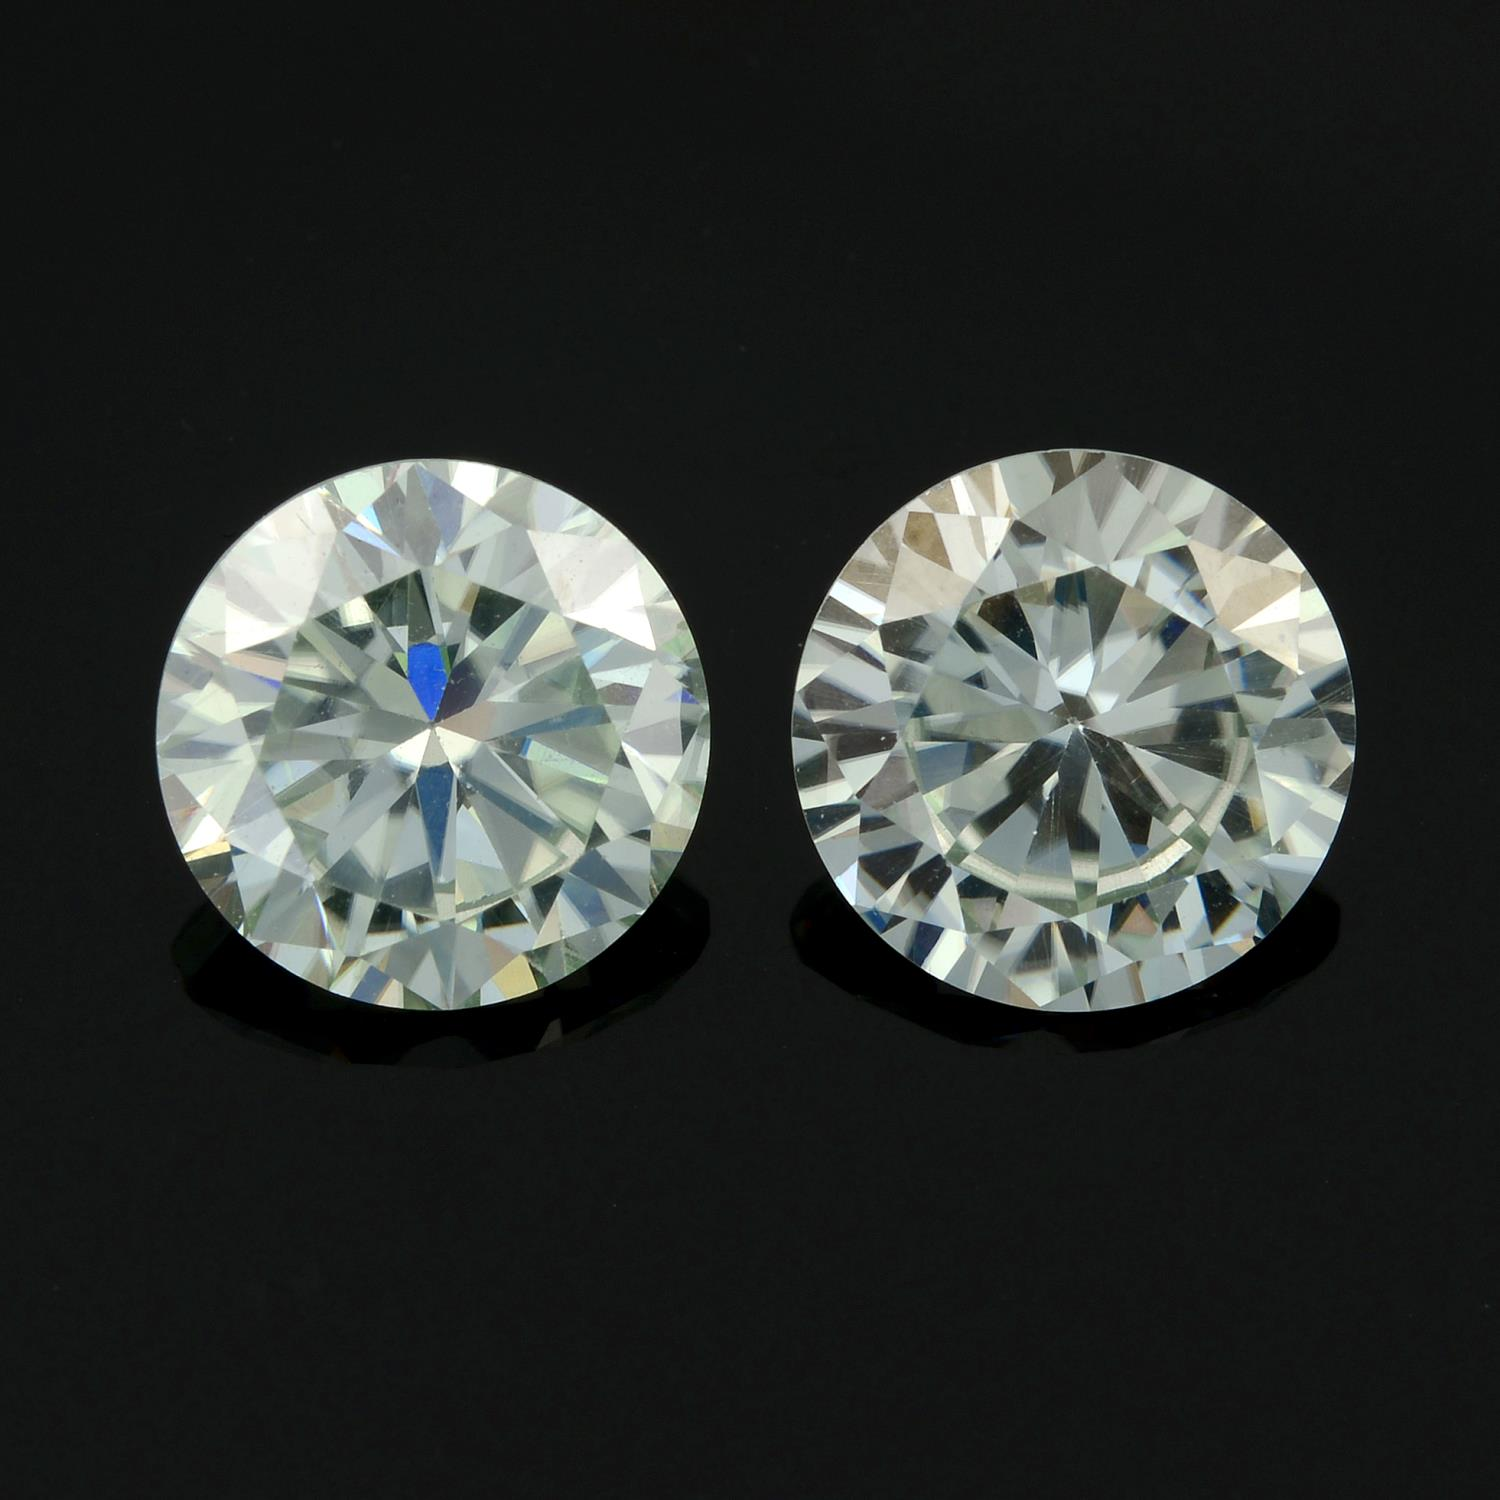 A pair of circular-shape colourless synthetic moissanite total weight 3.62cts.